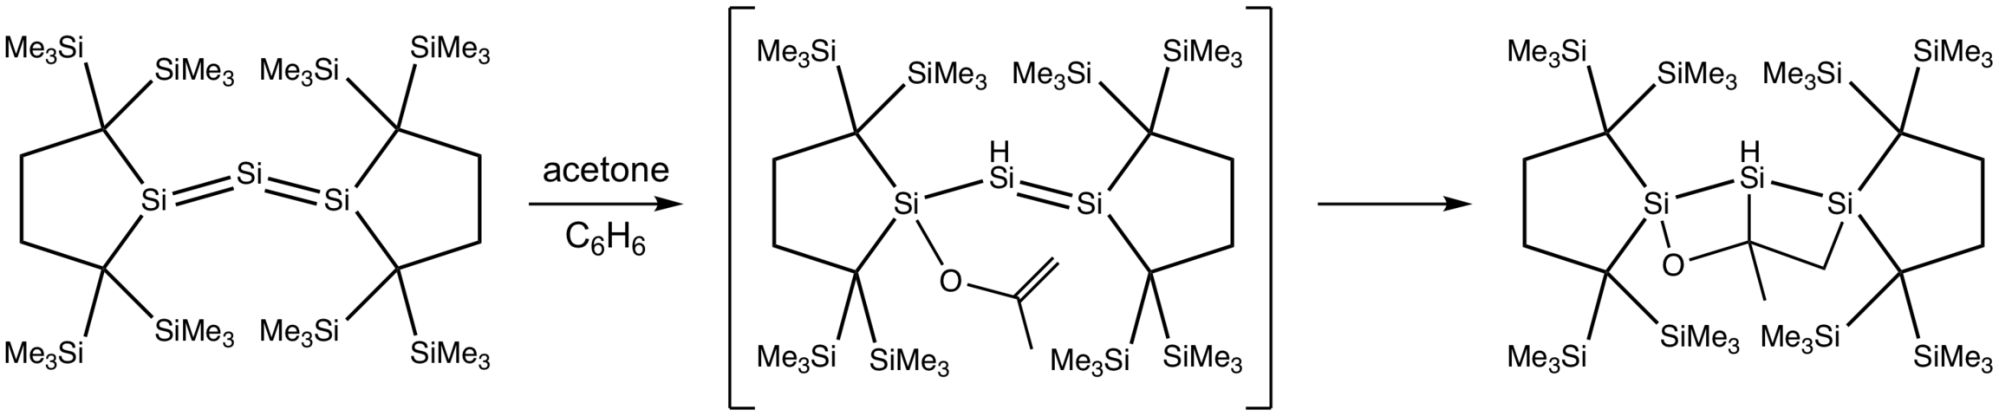 hight resolution of reaction of trisilaallene with acetone png